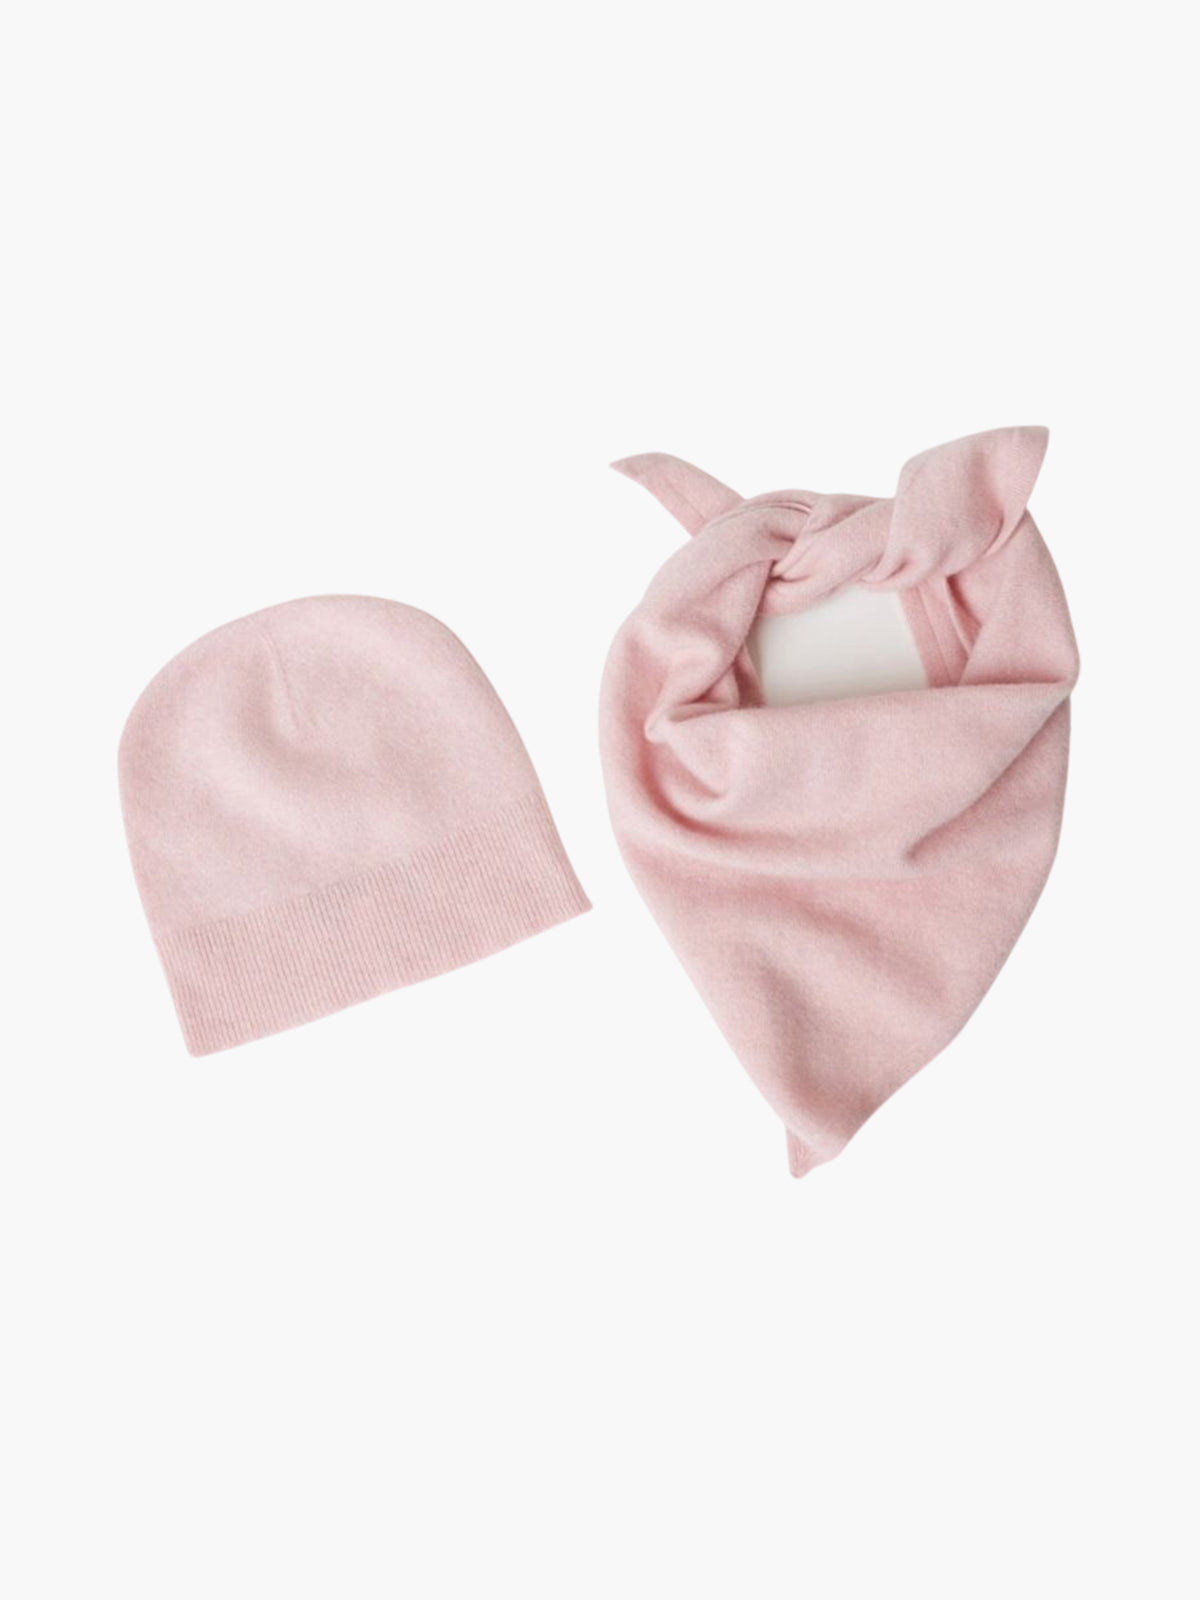 Beanie and Bandana Gifting Set | Cameo